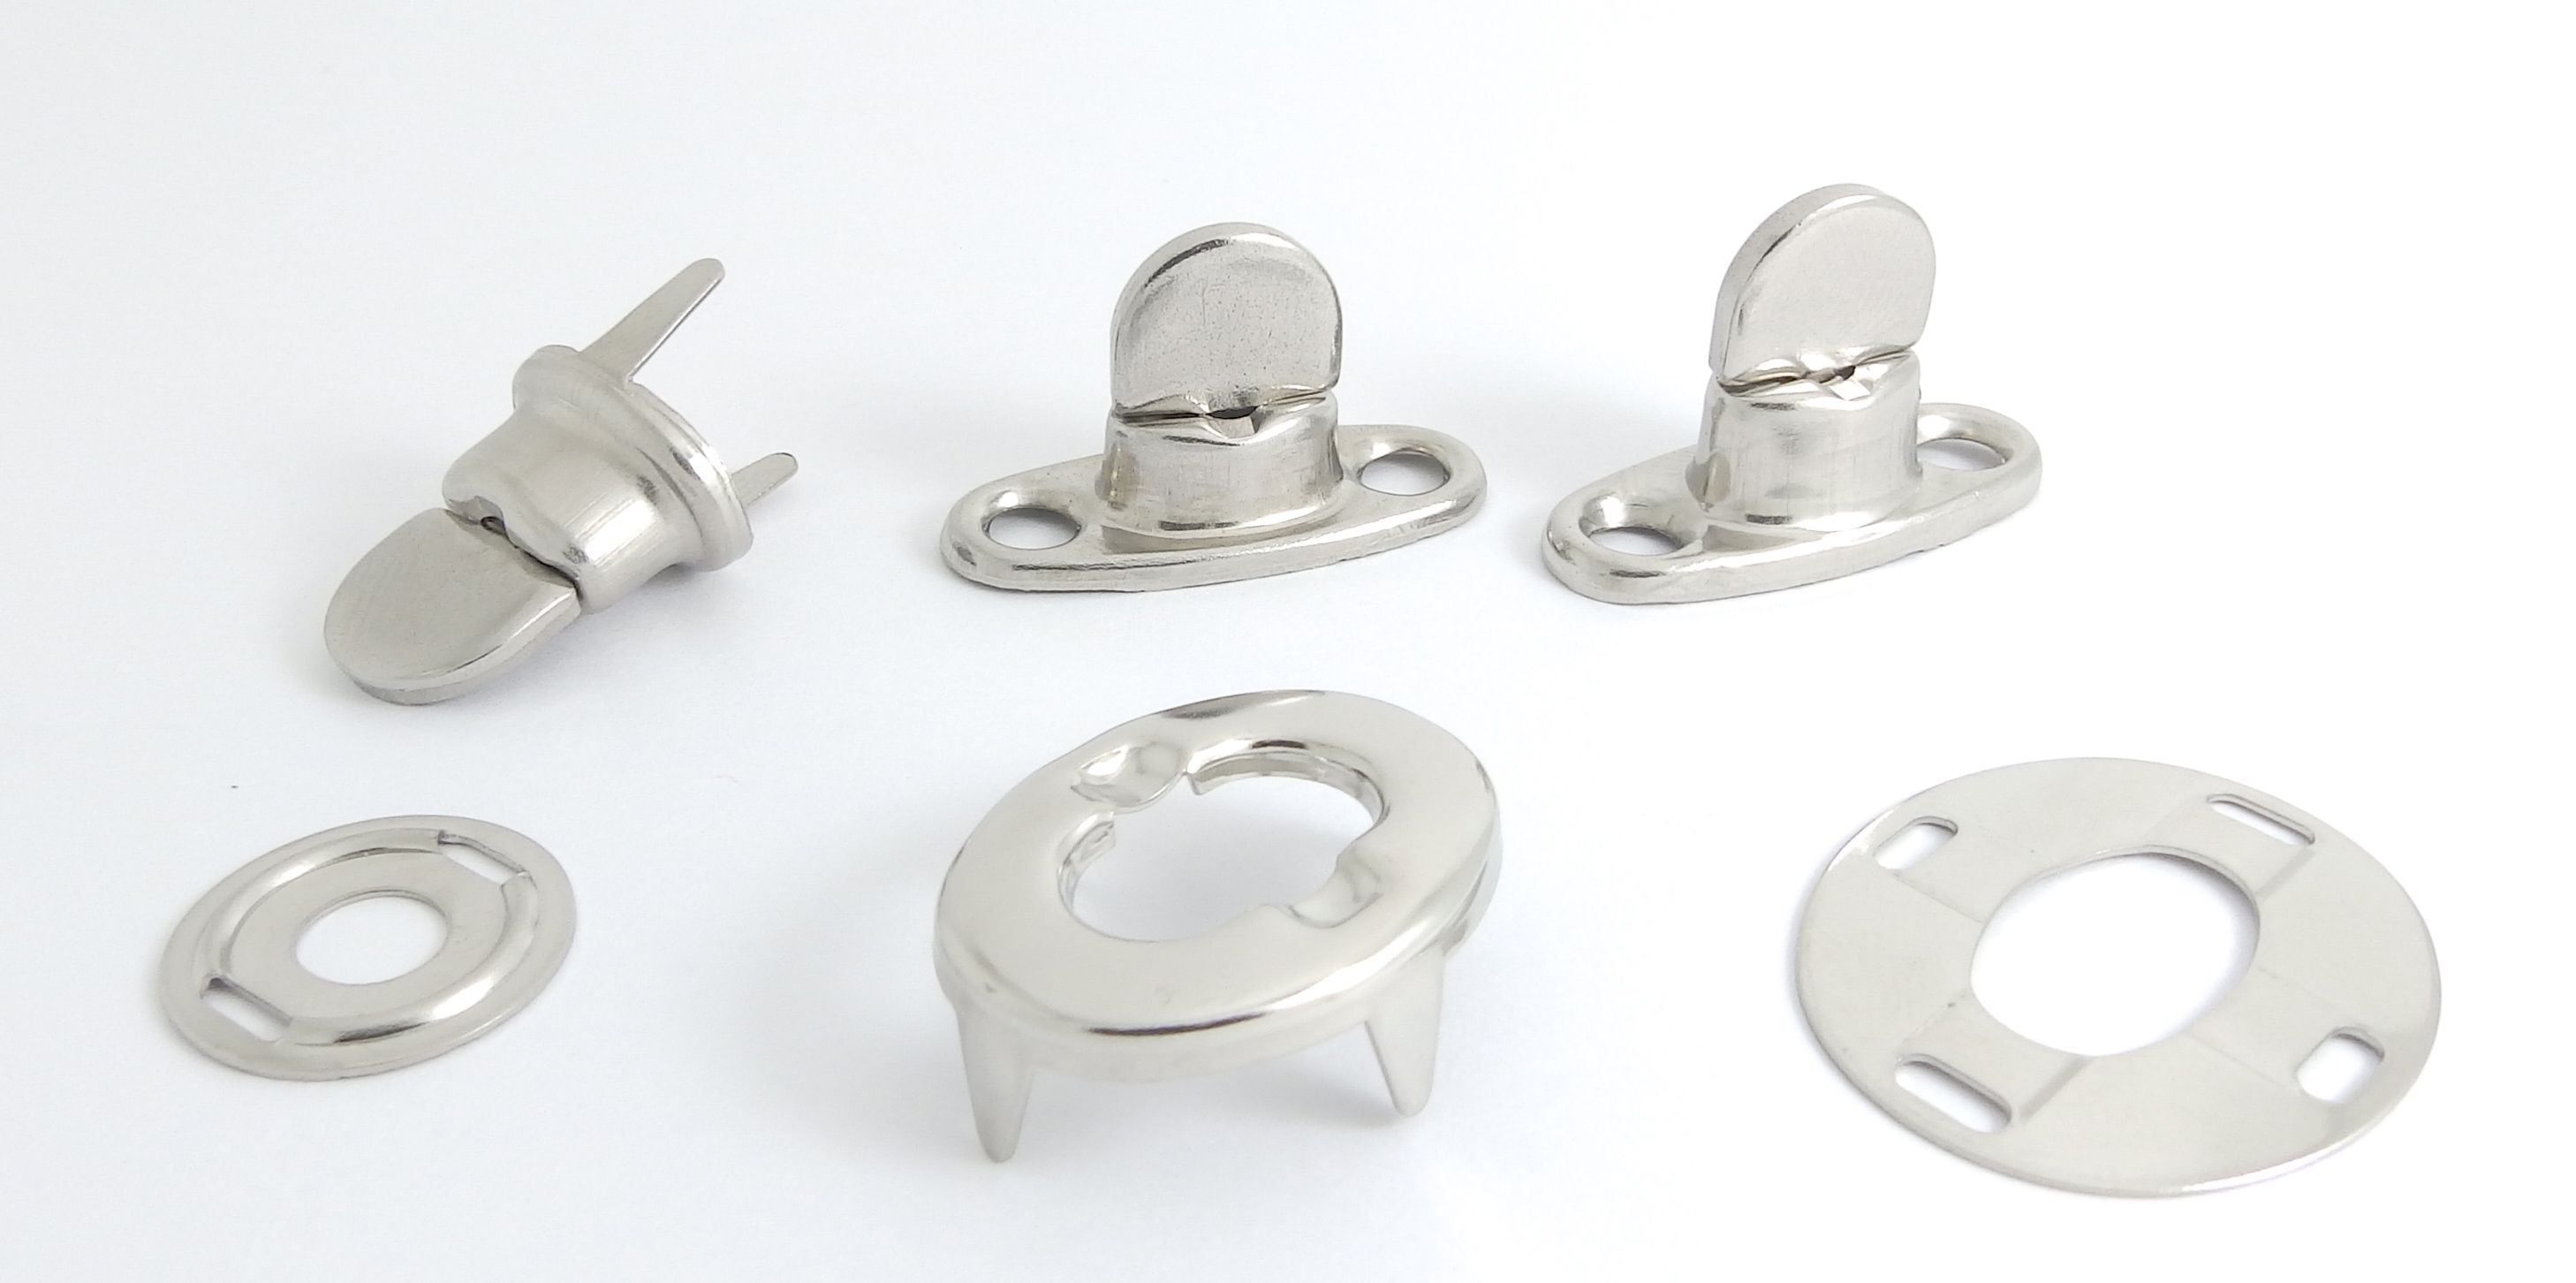 Marine Grade 316 Stainless Steel Turnbutton Fasteners 316 Stainless Steel Rivets Fasteners